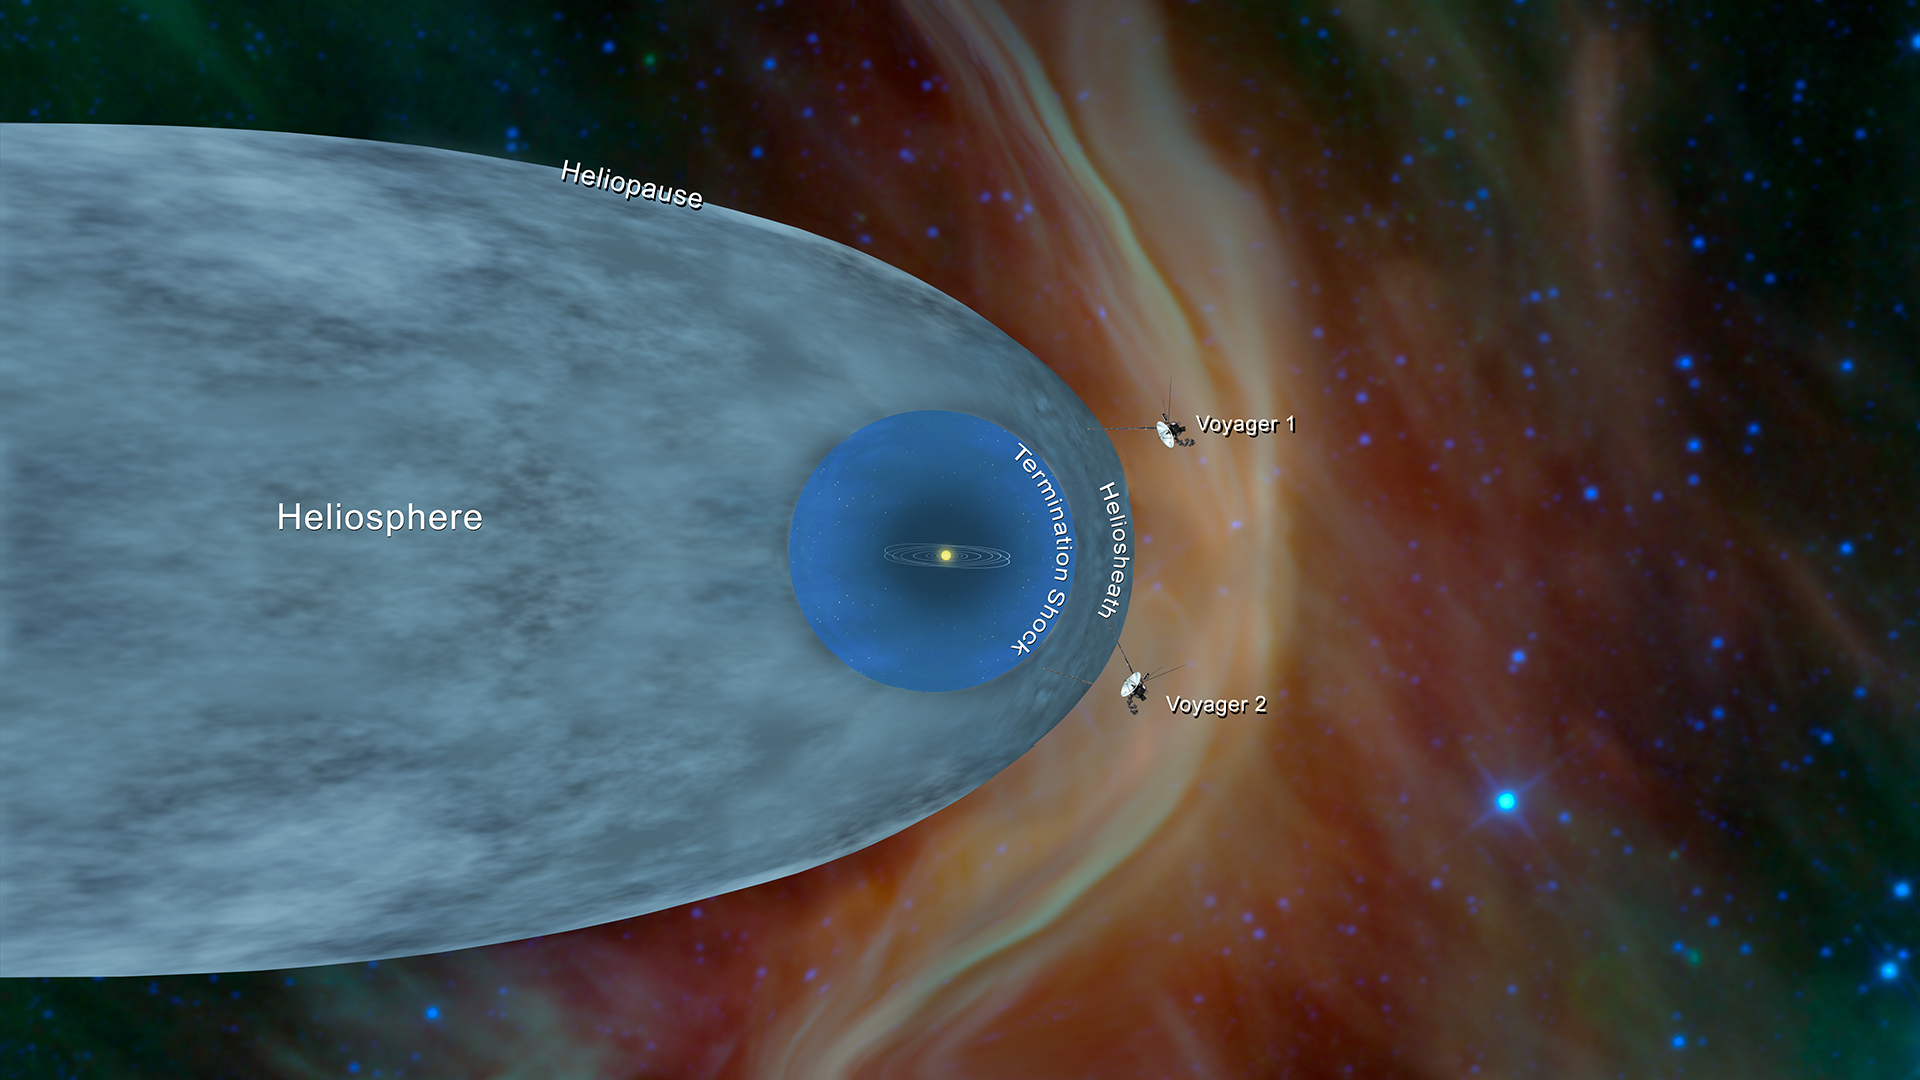 Artist illustration of the heliosphere and interstellar space.